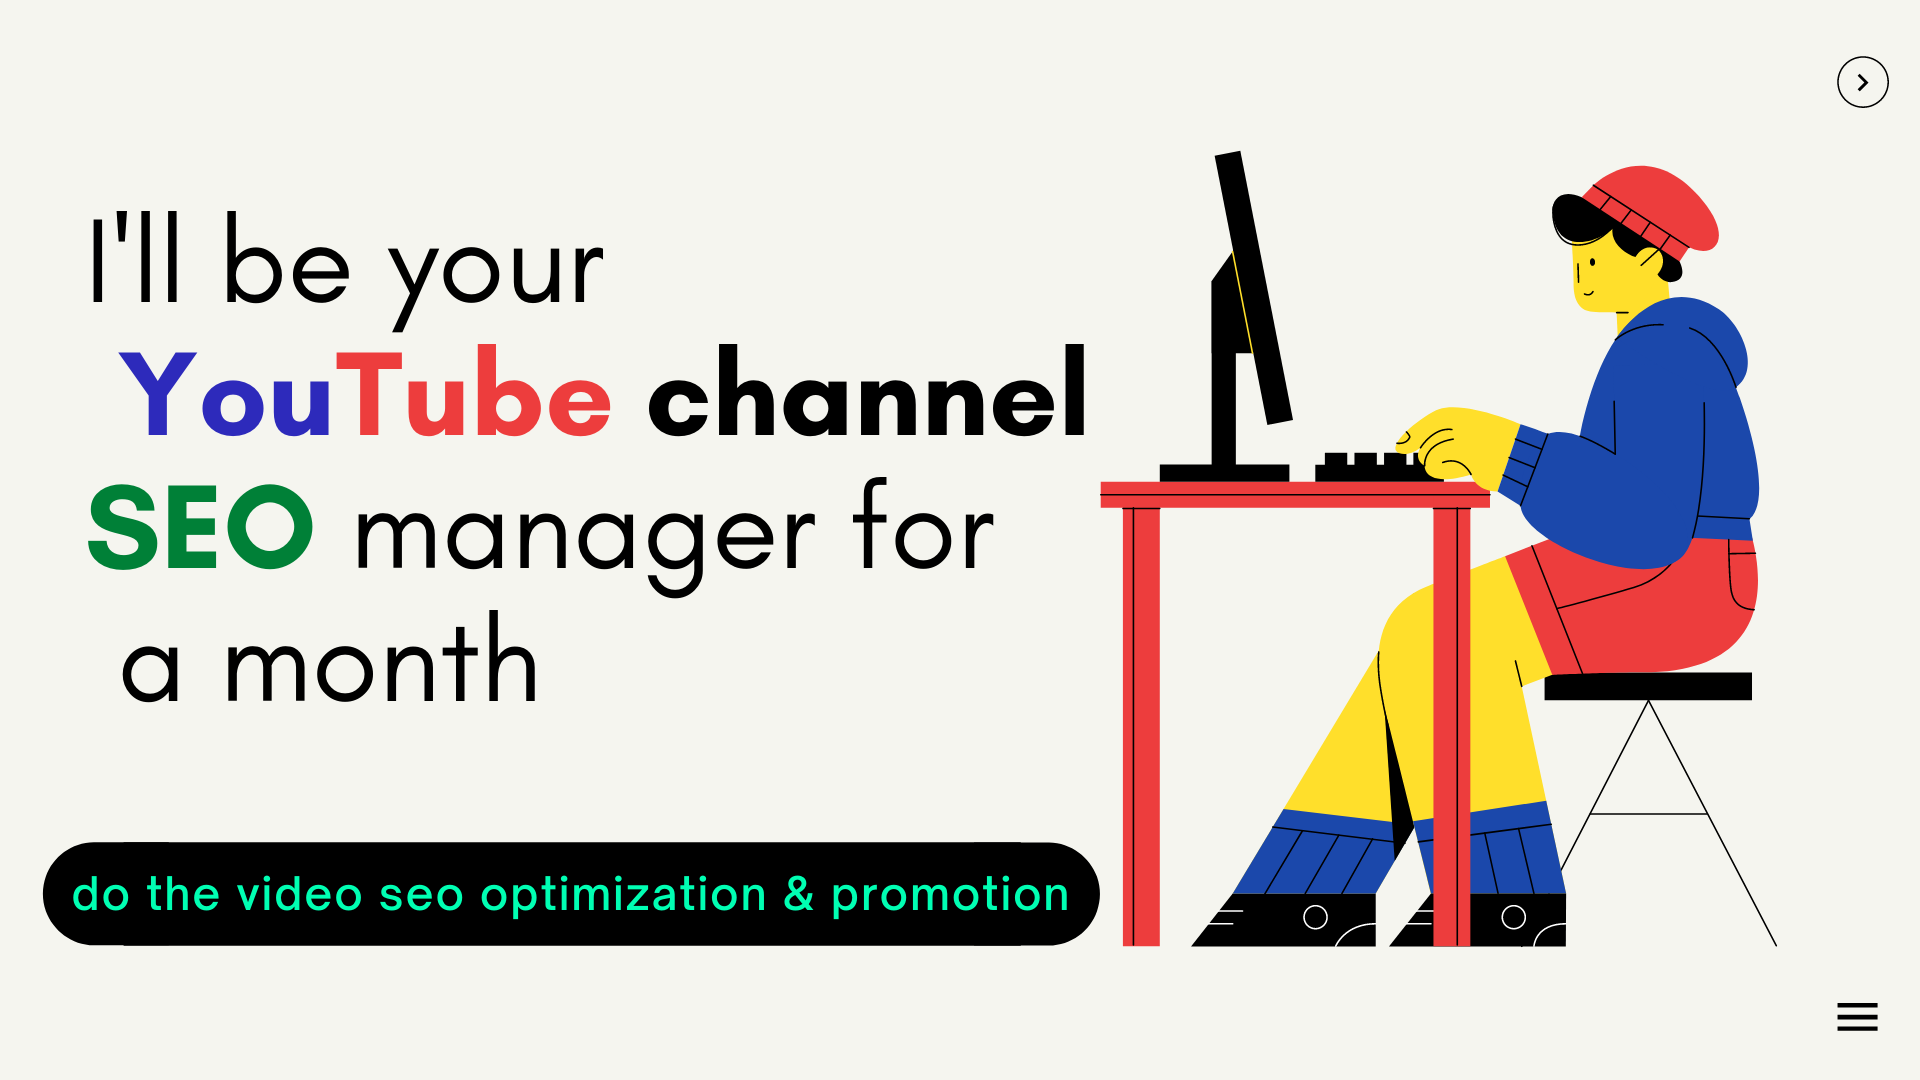 I'll Be Your YouTube SEO Manager For a Month